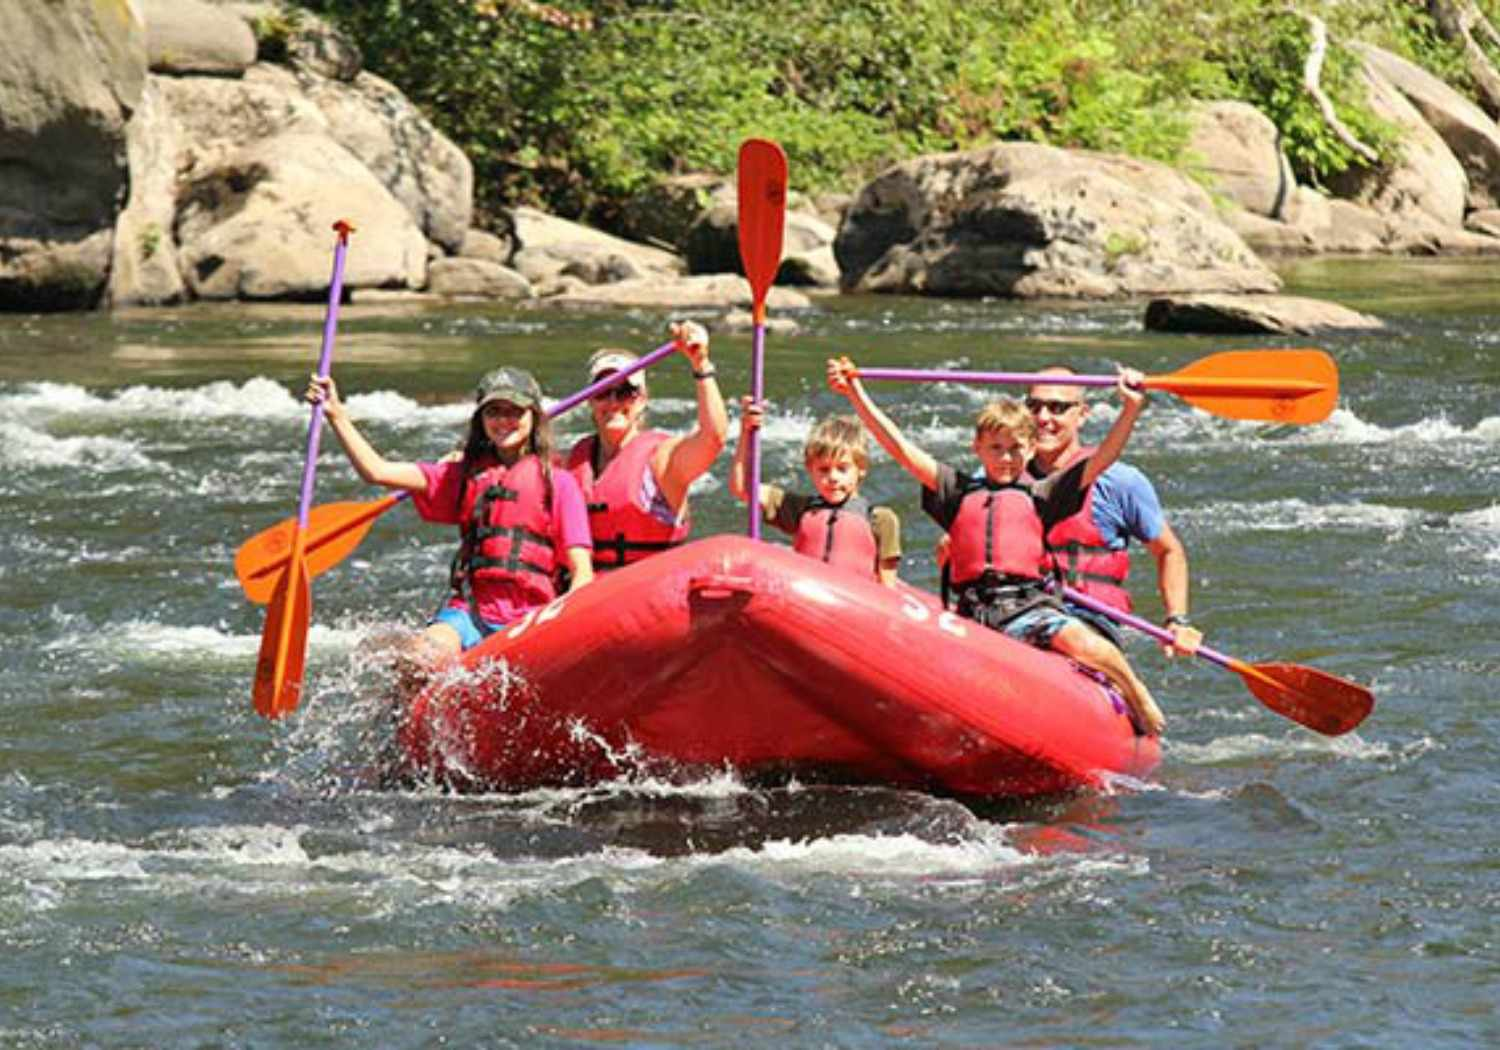 Family Rafting on Pennsylvania's Youghiogheny River